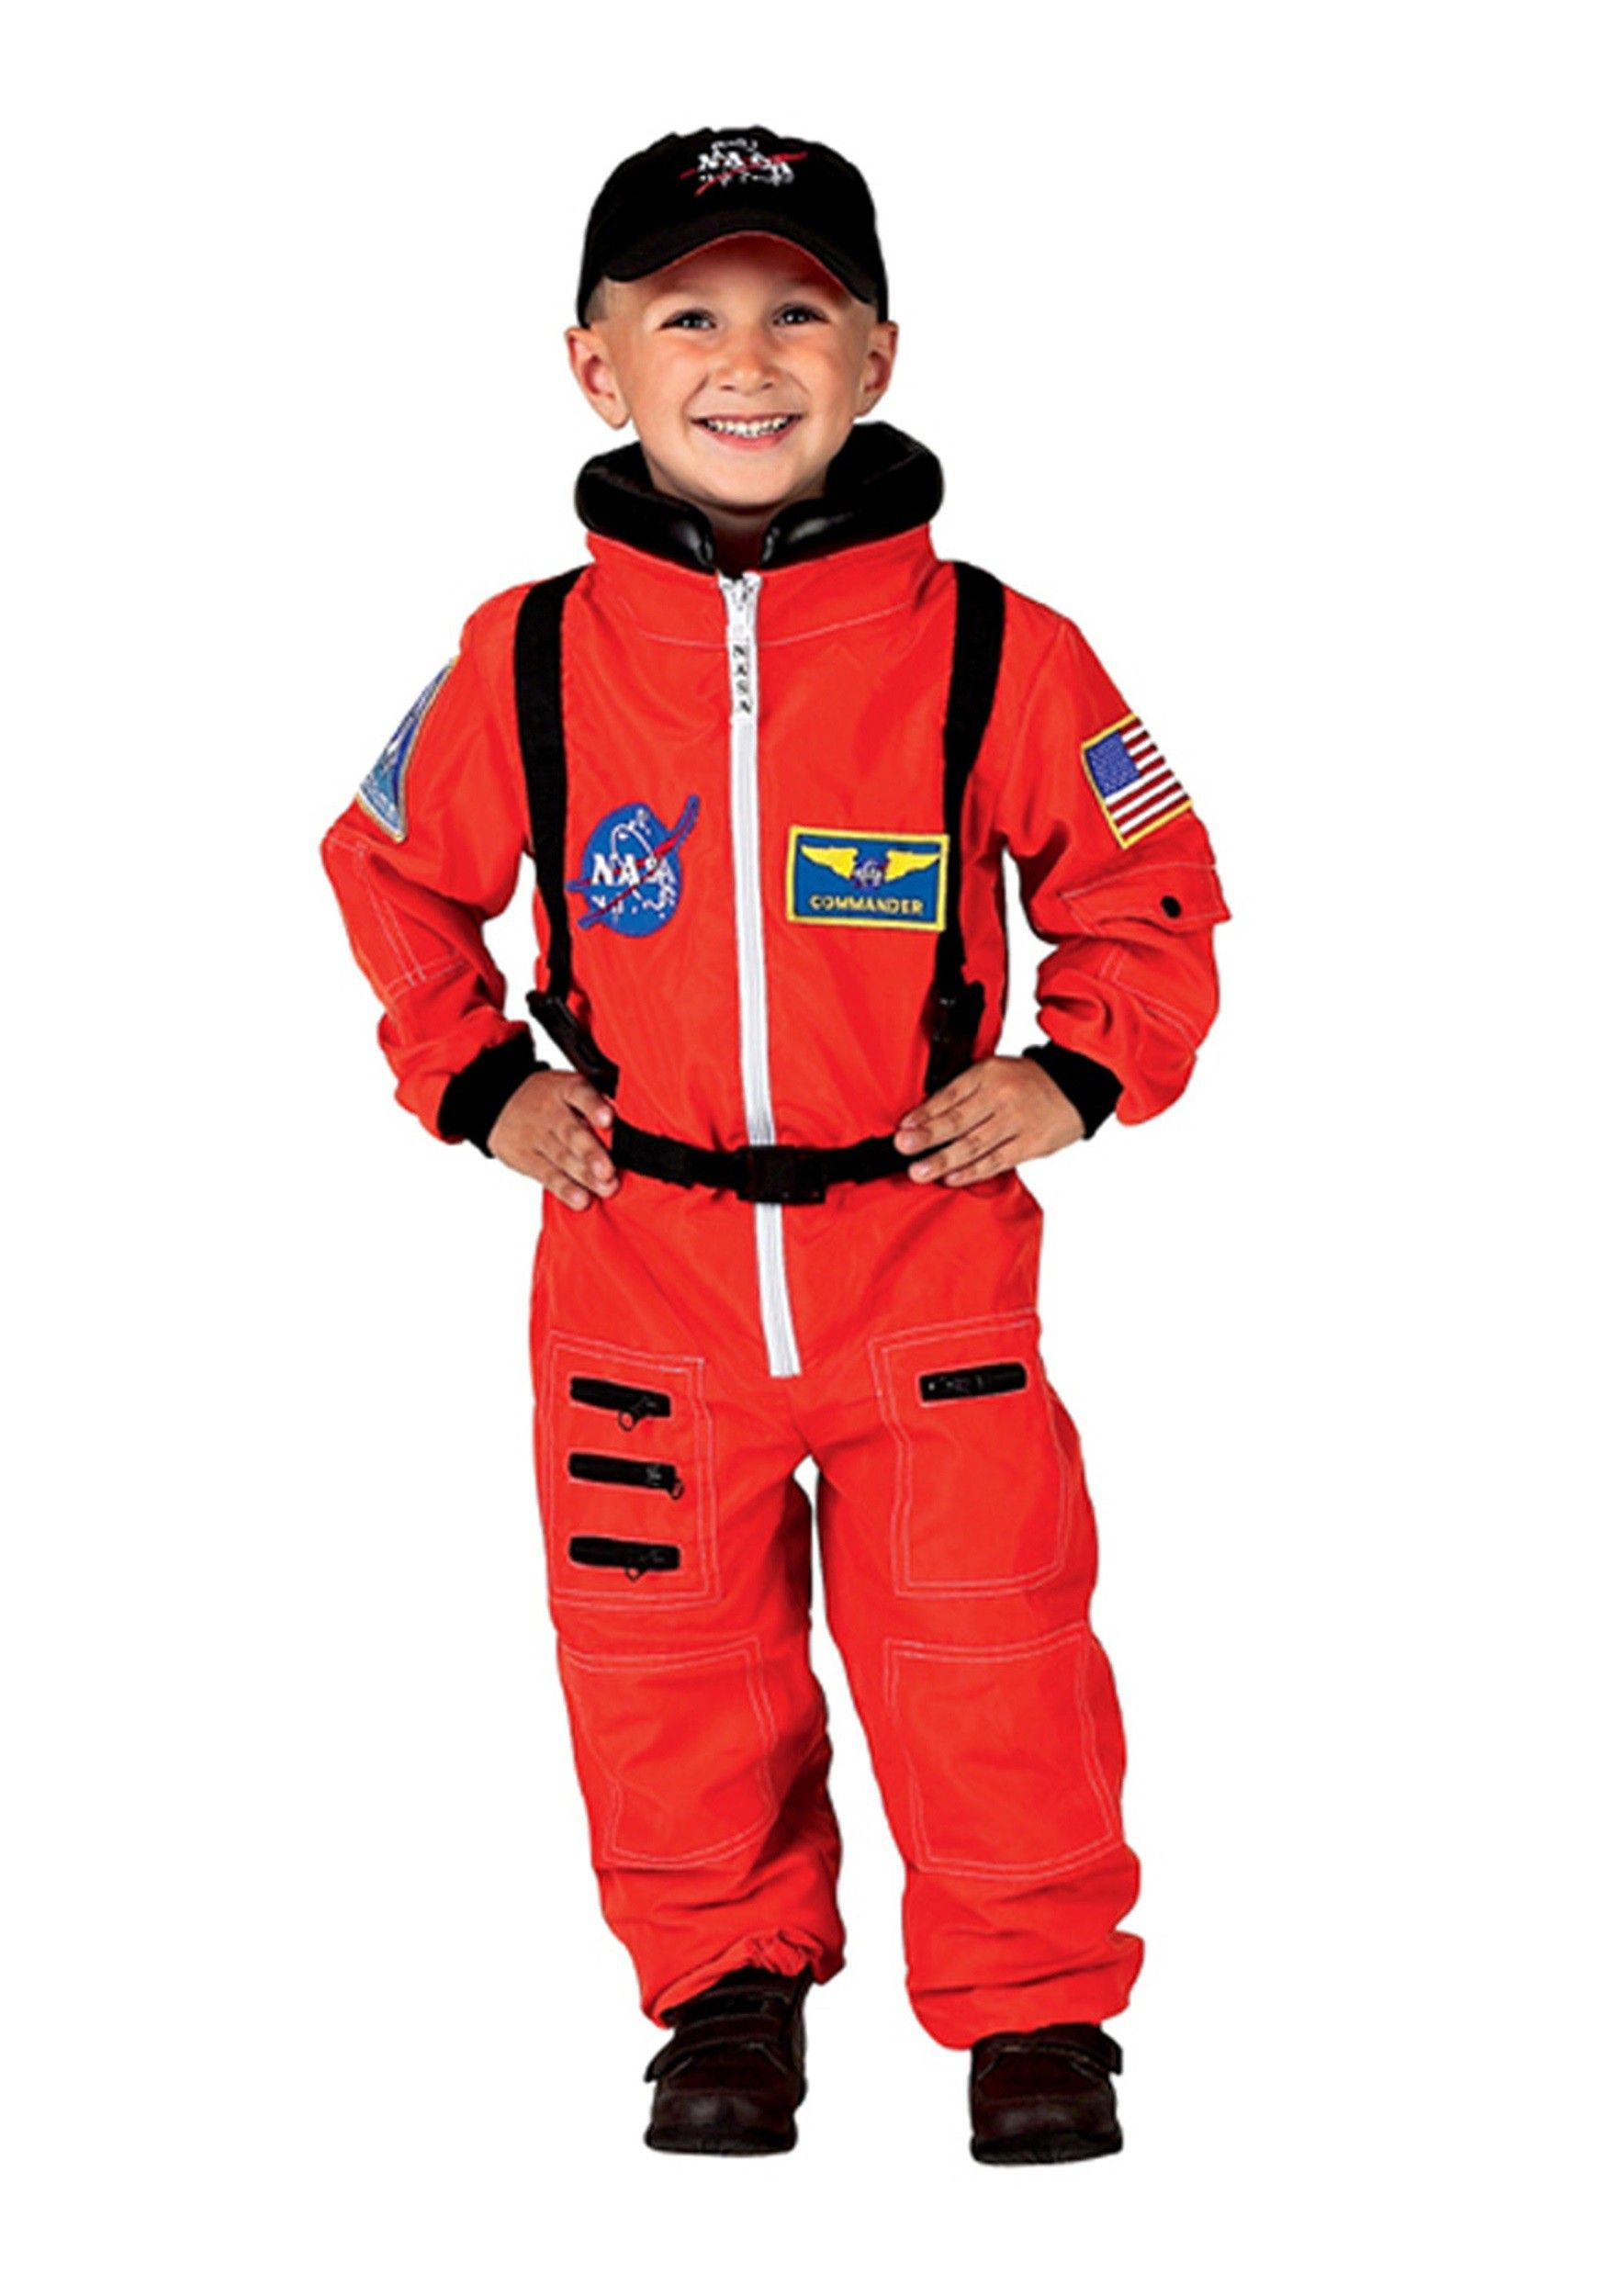 532ca0c1a424 Child Orange Astronaut Costume